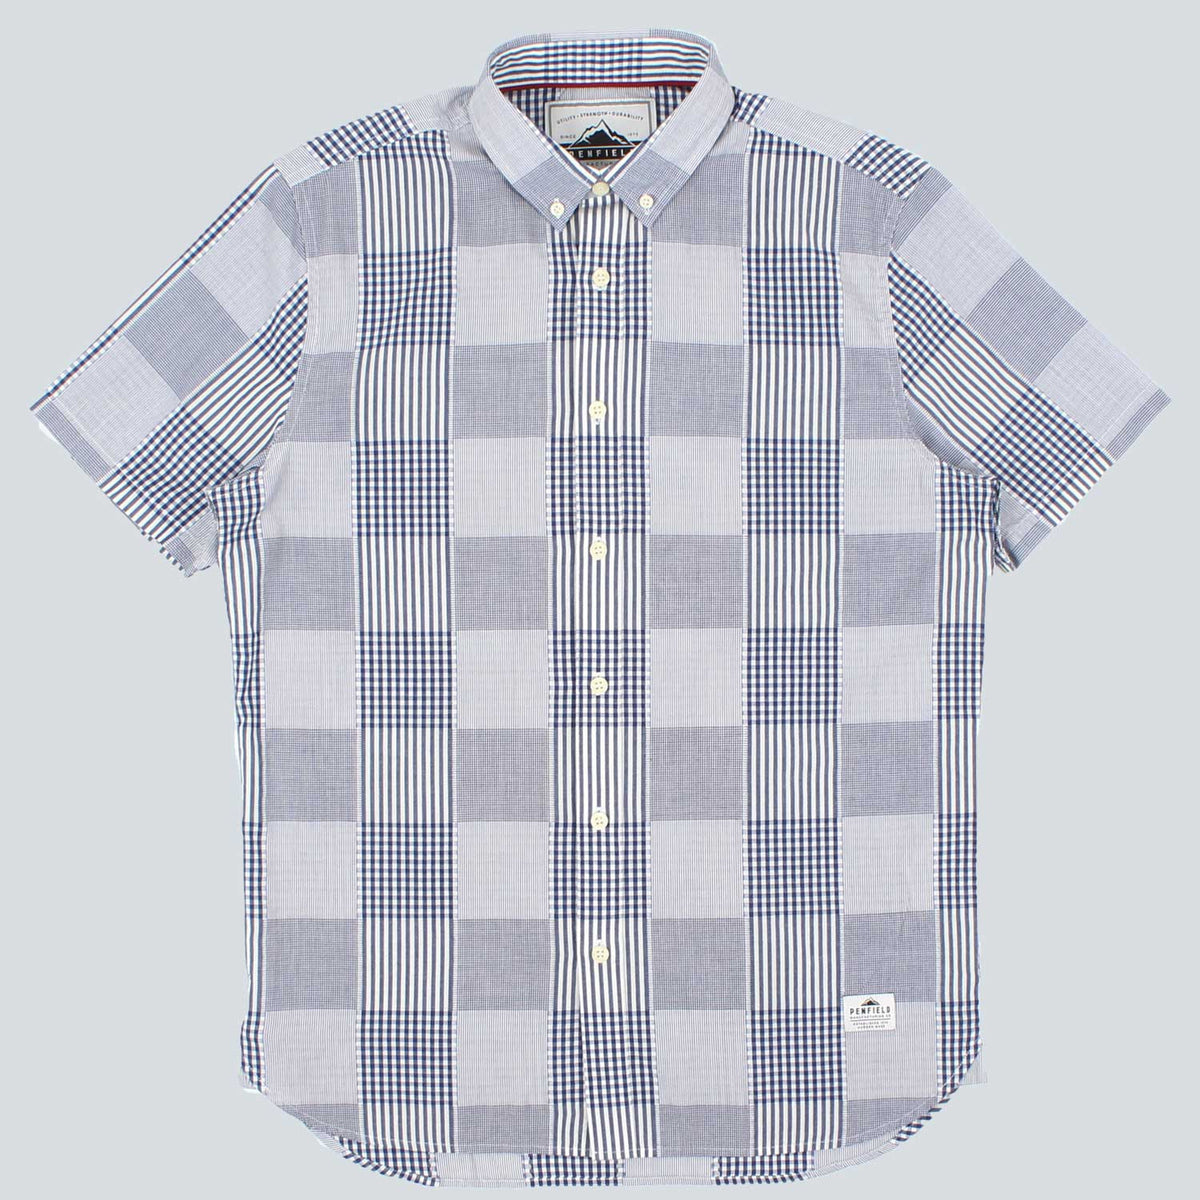 PENFIELD - PENROSE CHECK SHIRT - BLUE